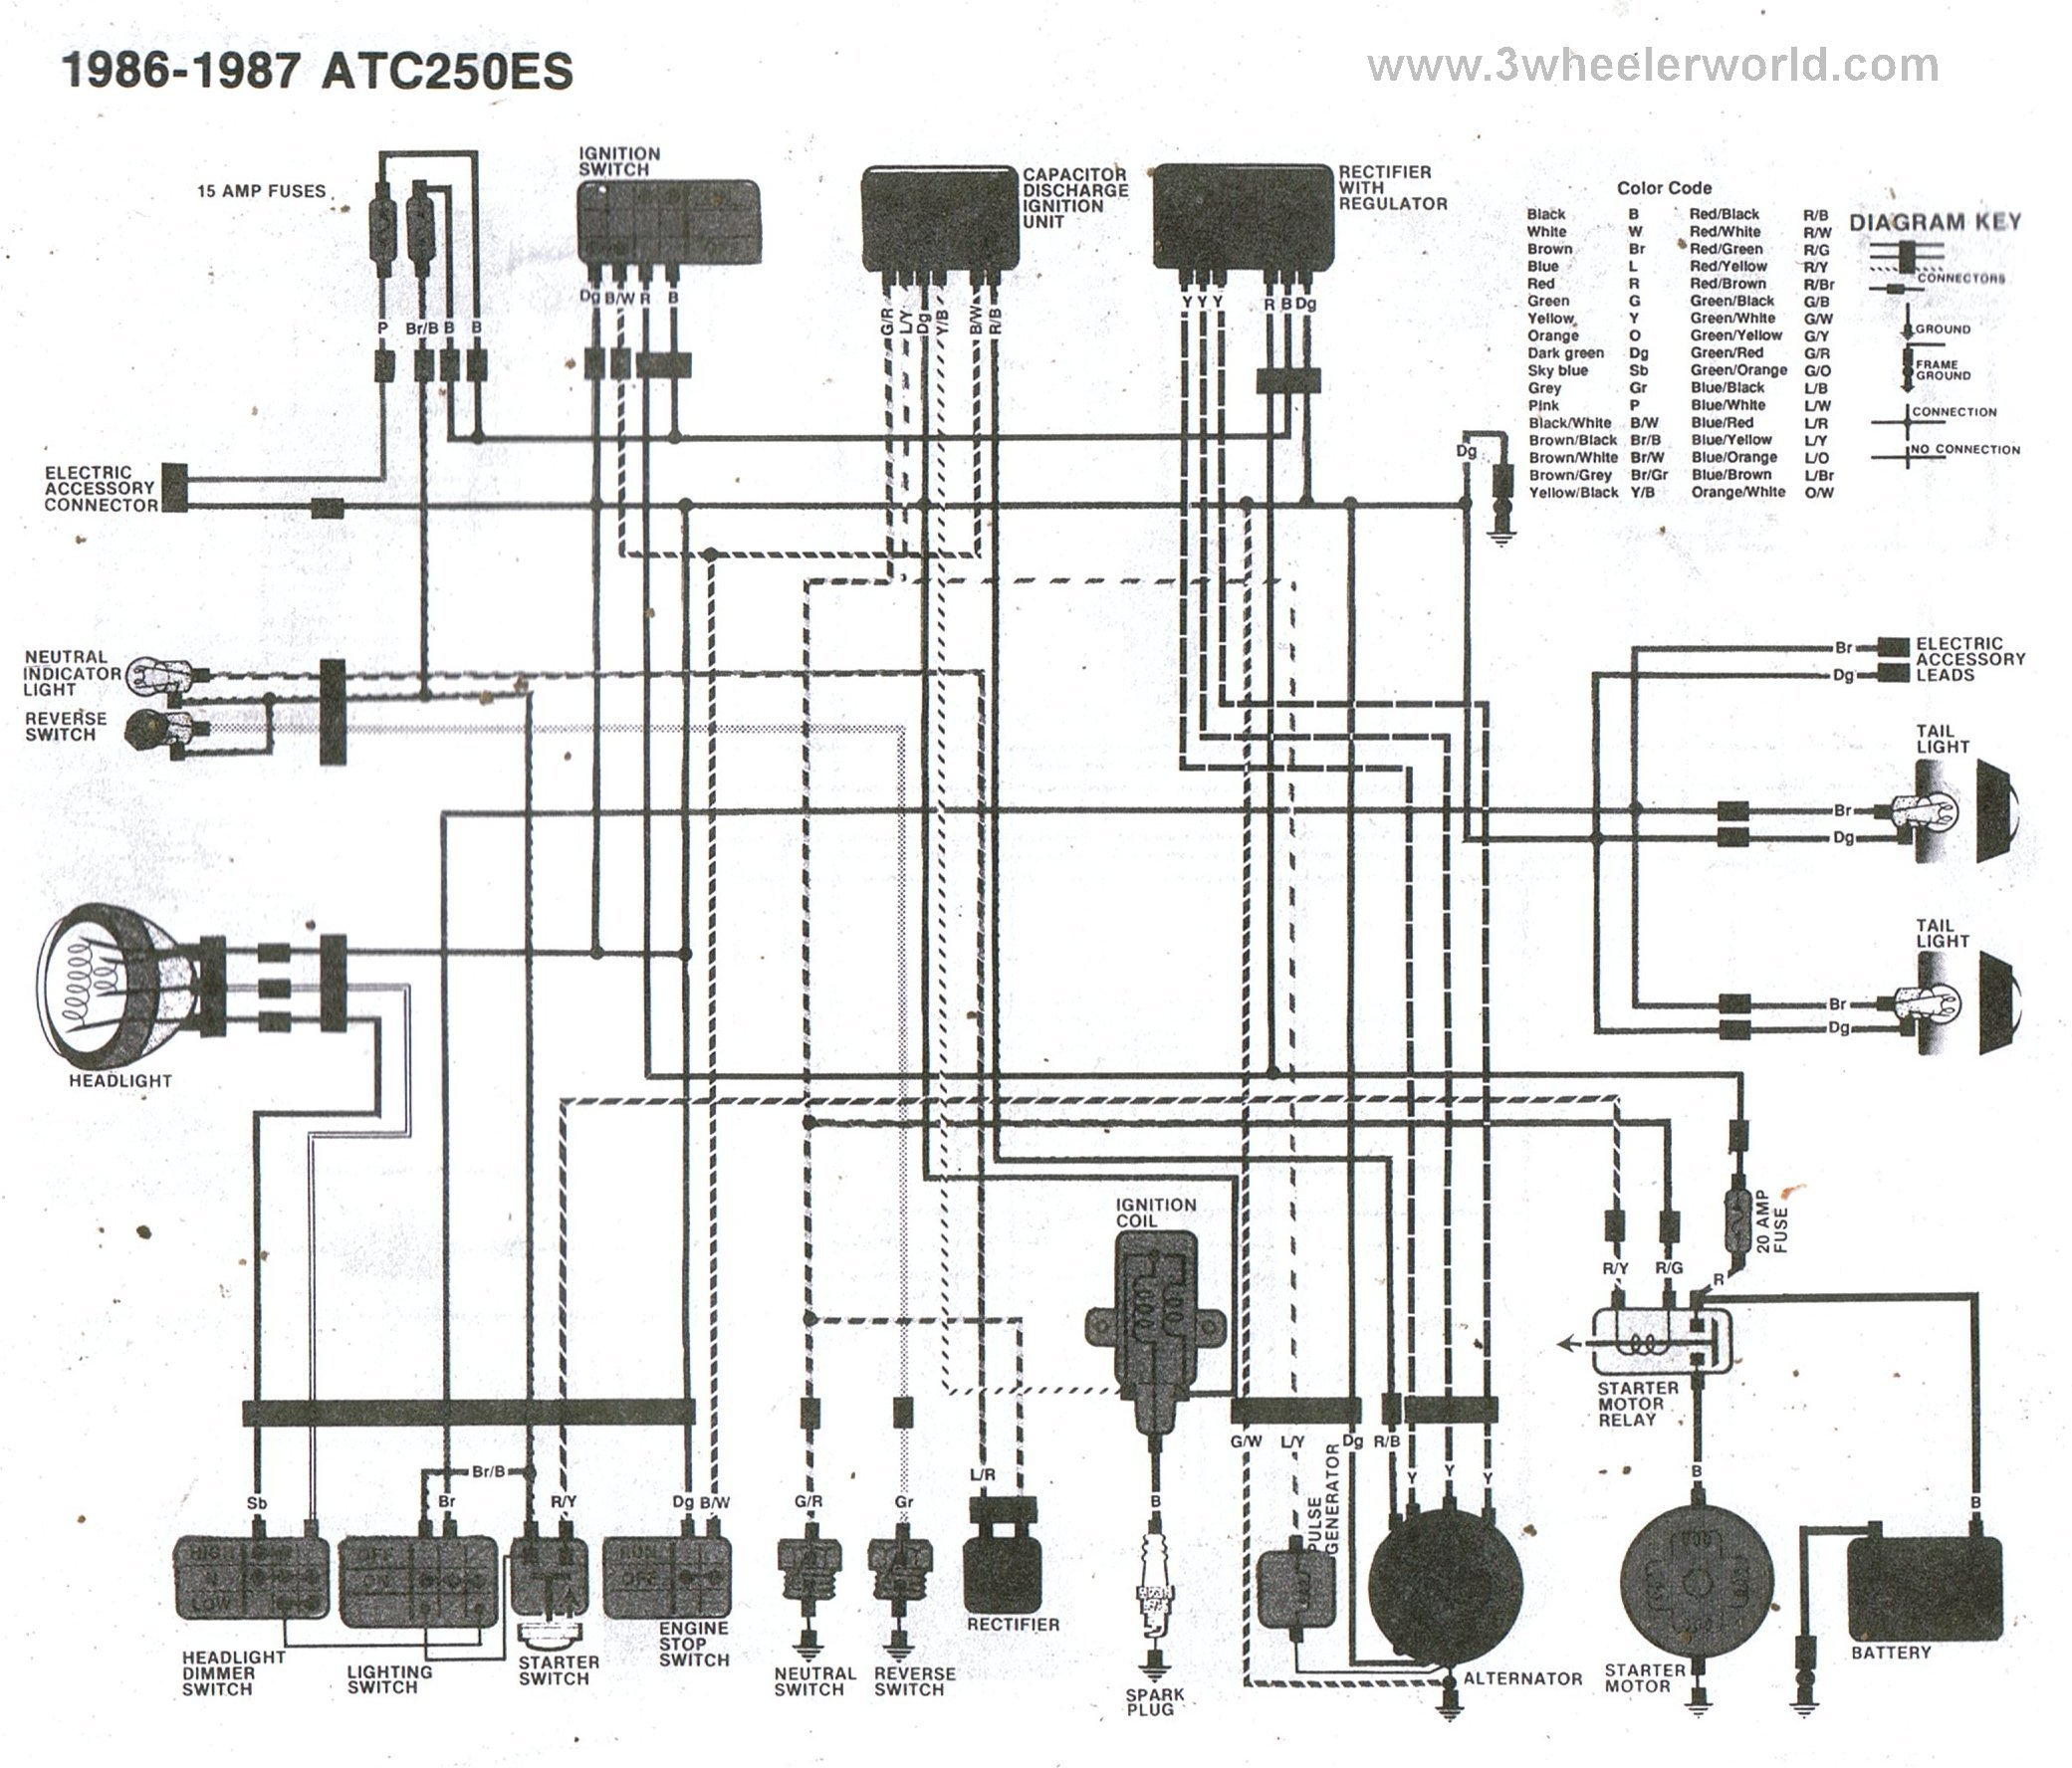 ATC250ESx86Thru87 3 wheeler world tech help honda wiring diagrams kawasaki prairie 300 wiring diagram at bayanpartner.co